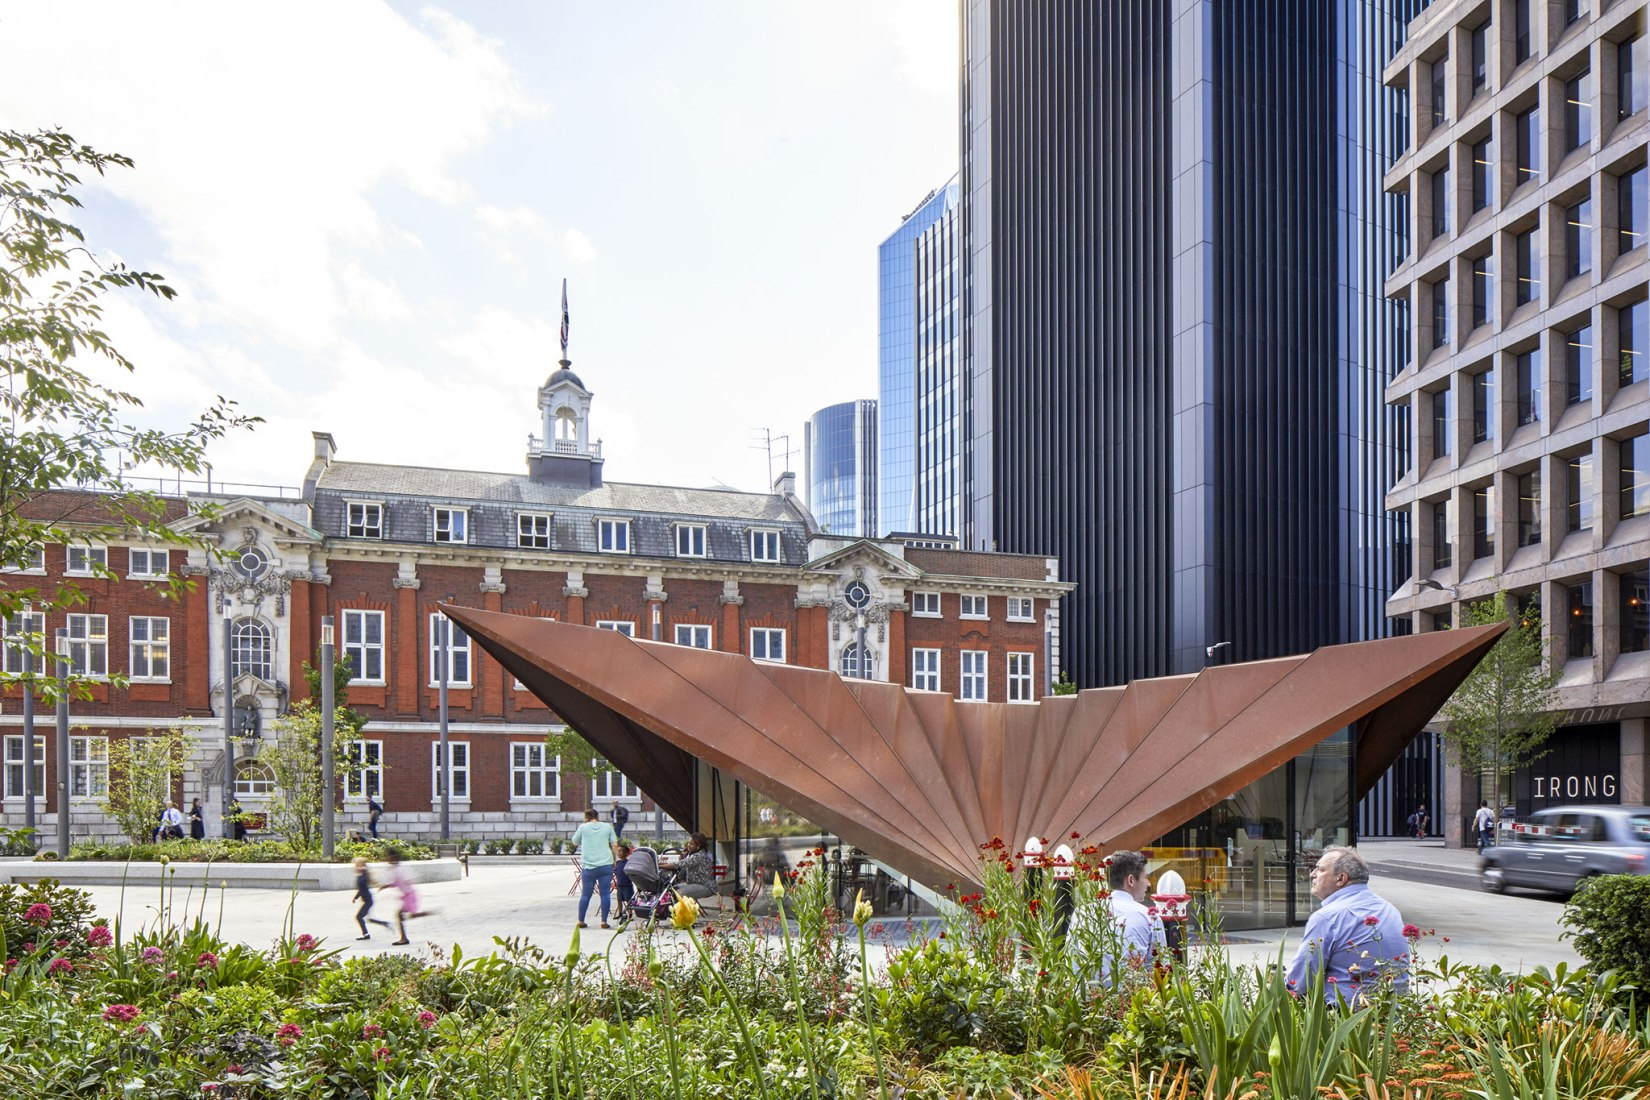 Aldgate Pavilion is the centrepiece structure for the new Aldgate Square. Portsoken Pavilion by Make Architects. Courtesy by Make Architects.